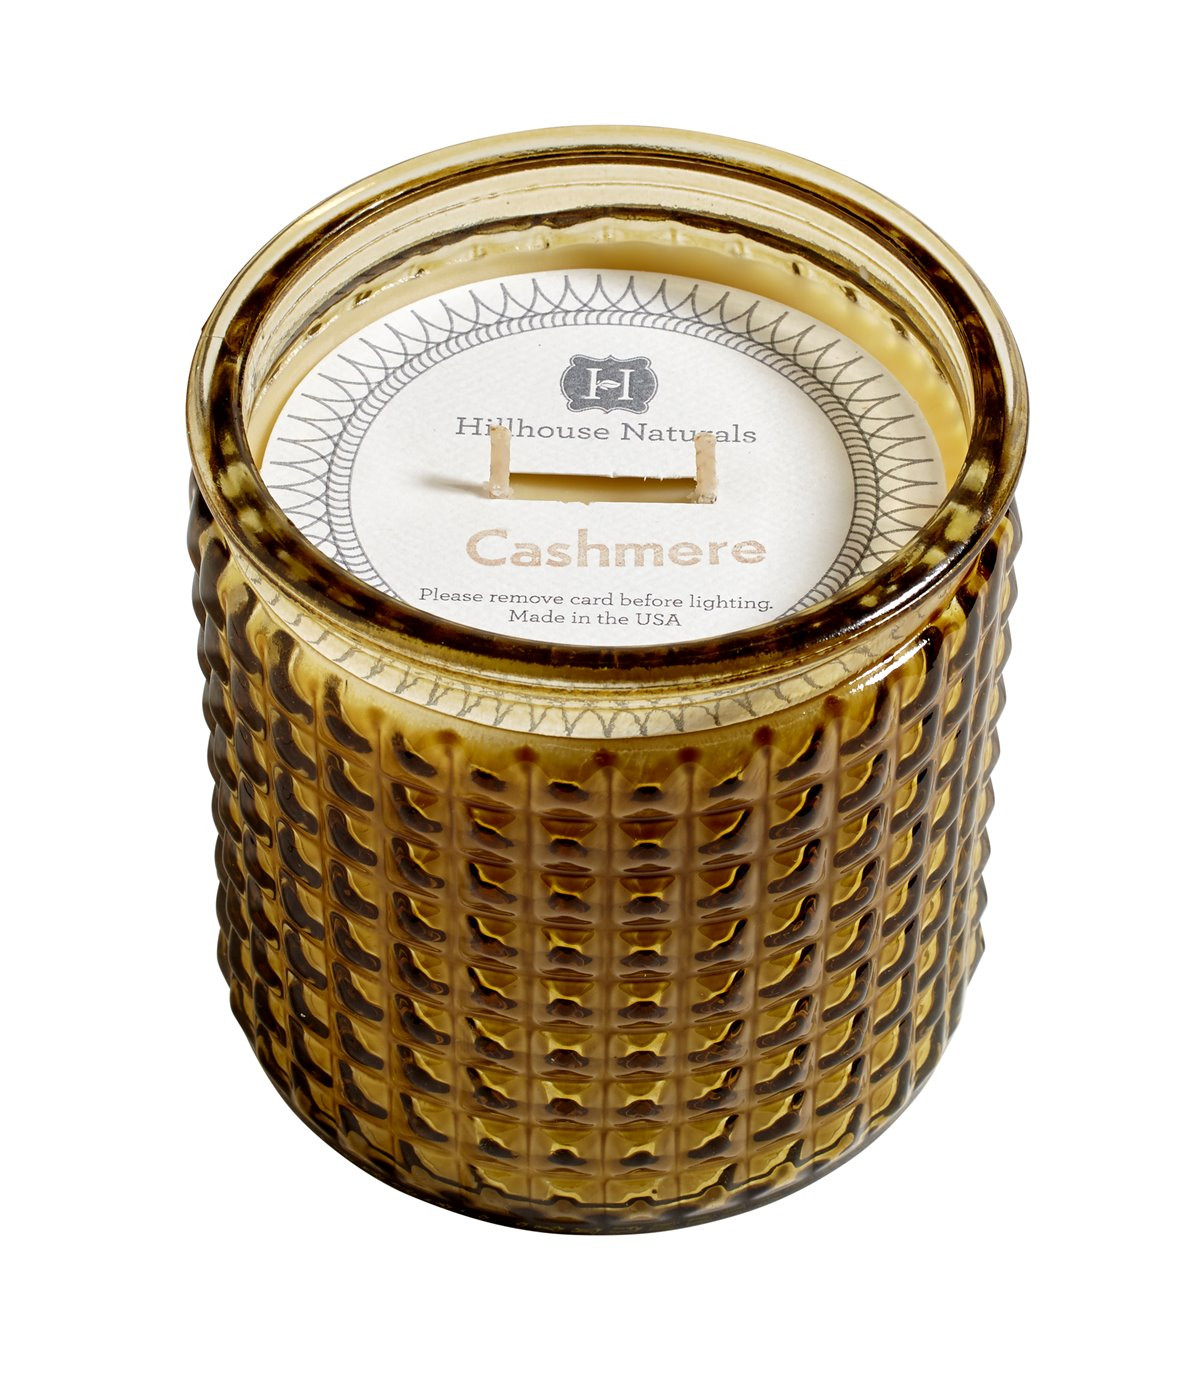 Cashmere Large Candle In Glass 15 oz by Hillhouse Naturals